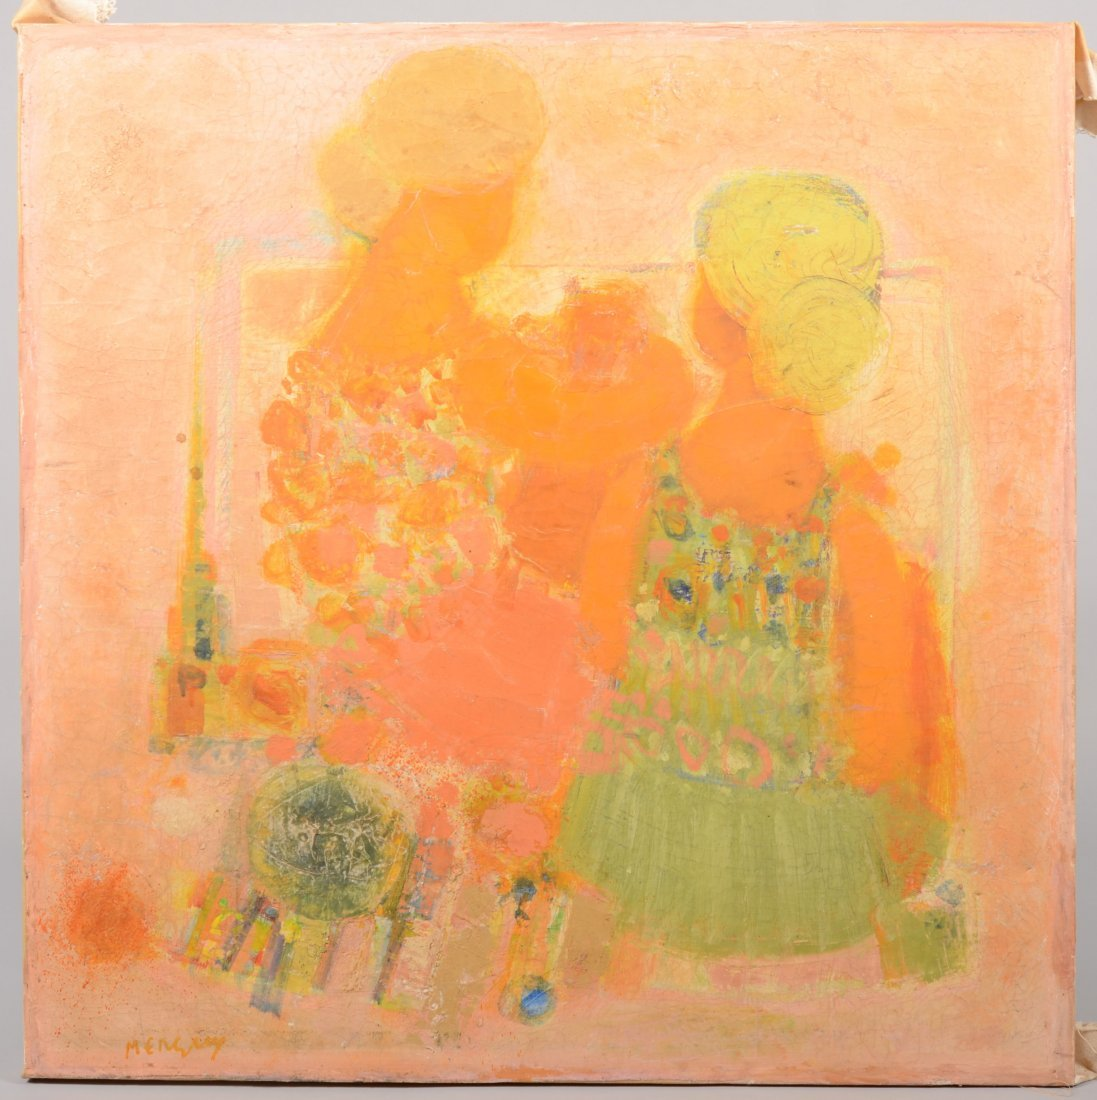 59: Impressionist Image of Two Woman, Oil on Canvas. Si